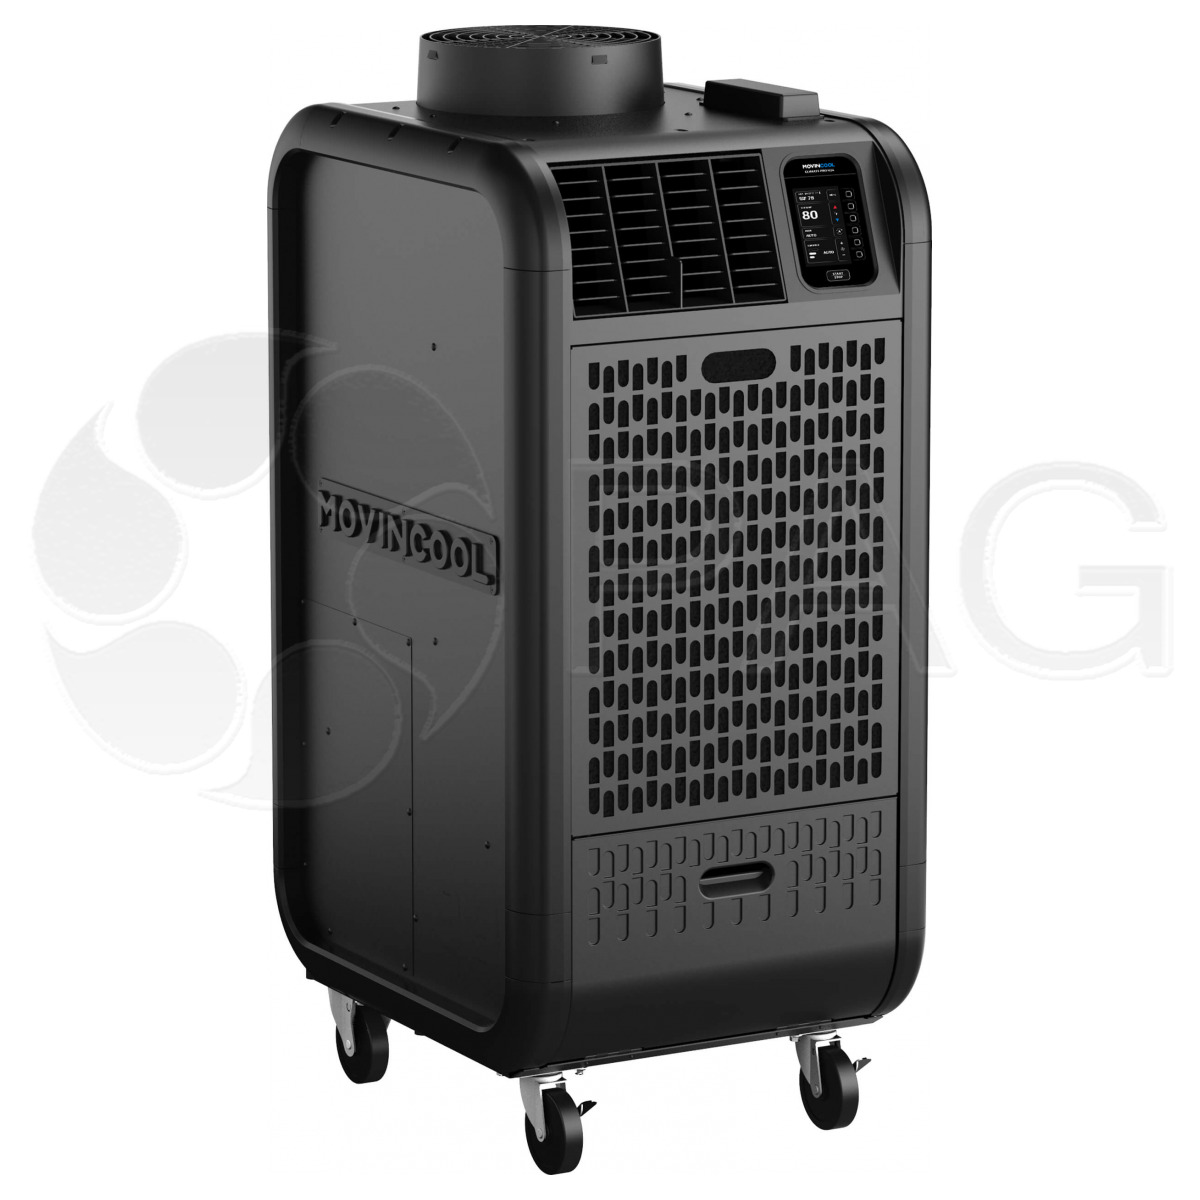 MovinCool-Climate-Pro-K24 commercial air conditioner